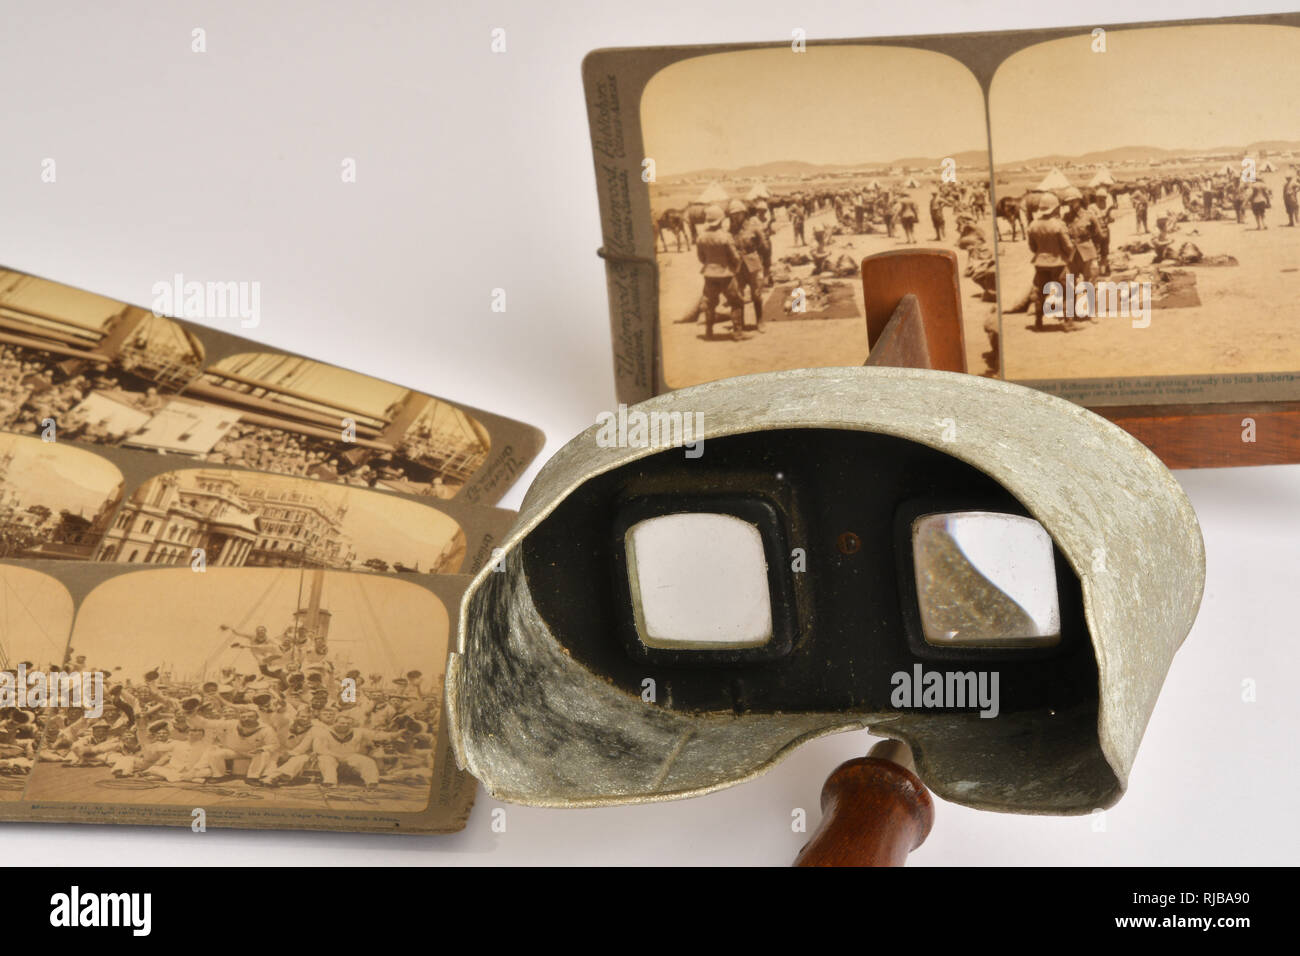 Victorian stereoscopic viewer with a view of troops in the South African War in the holder.Other cards in the set depicting that conflict also shown. - Stock Image